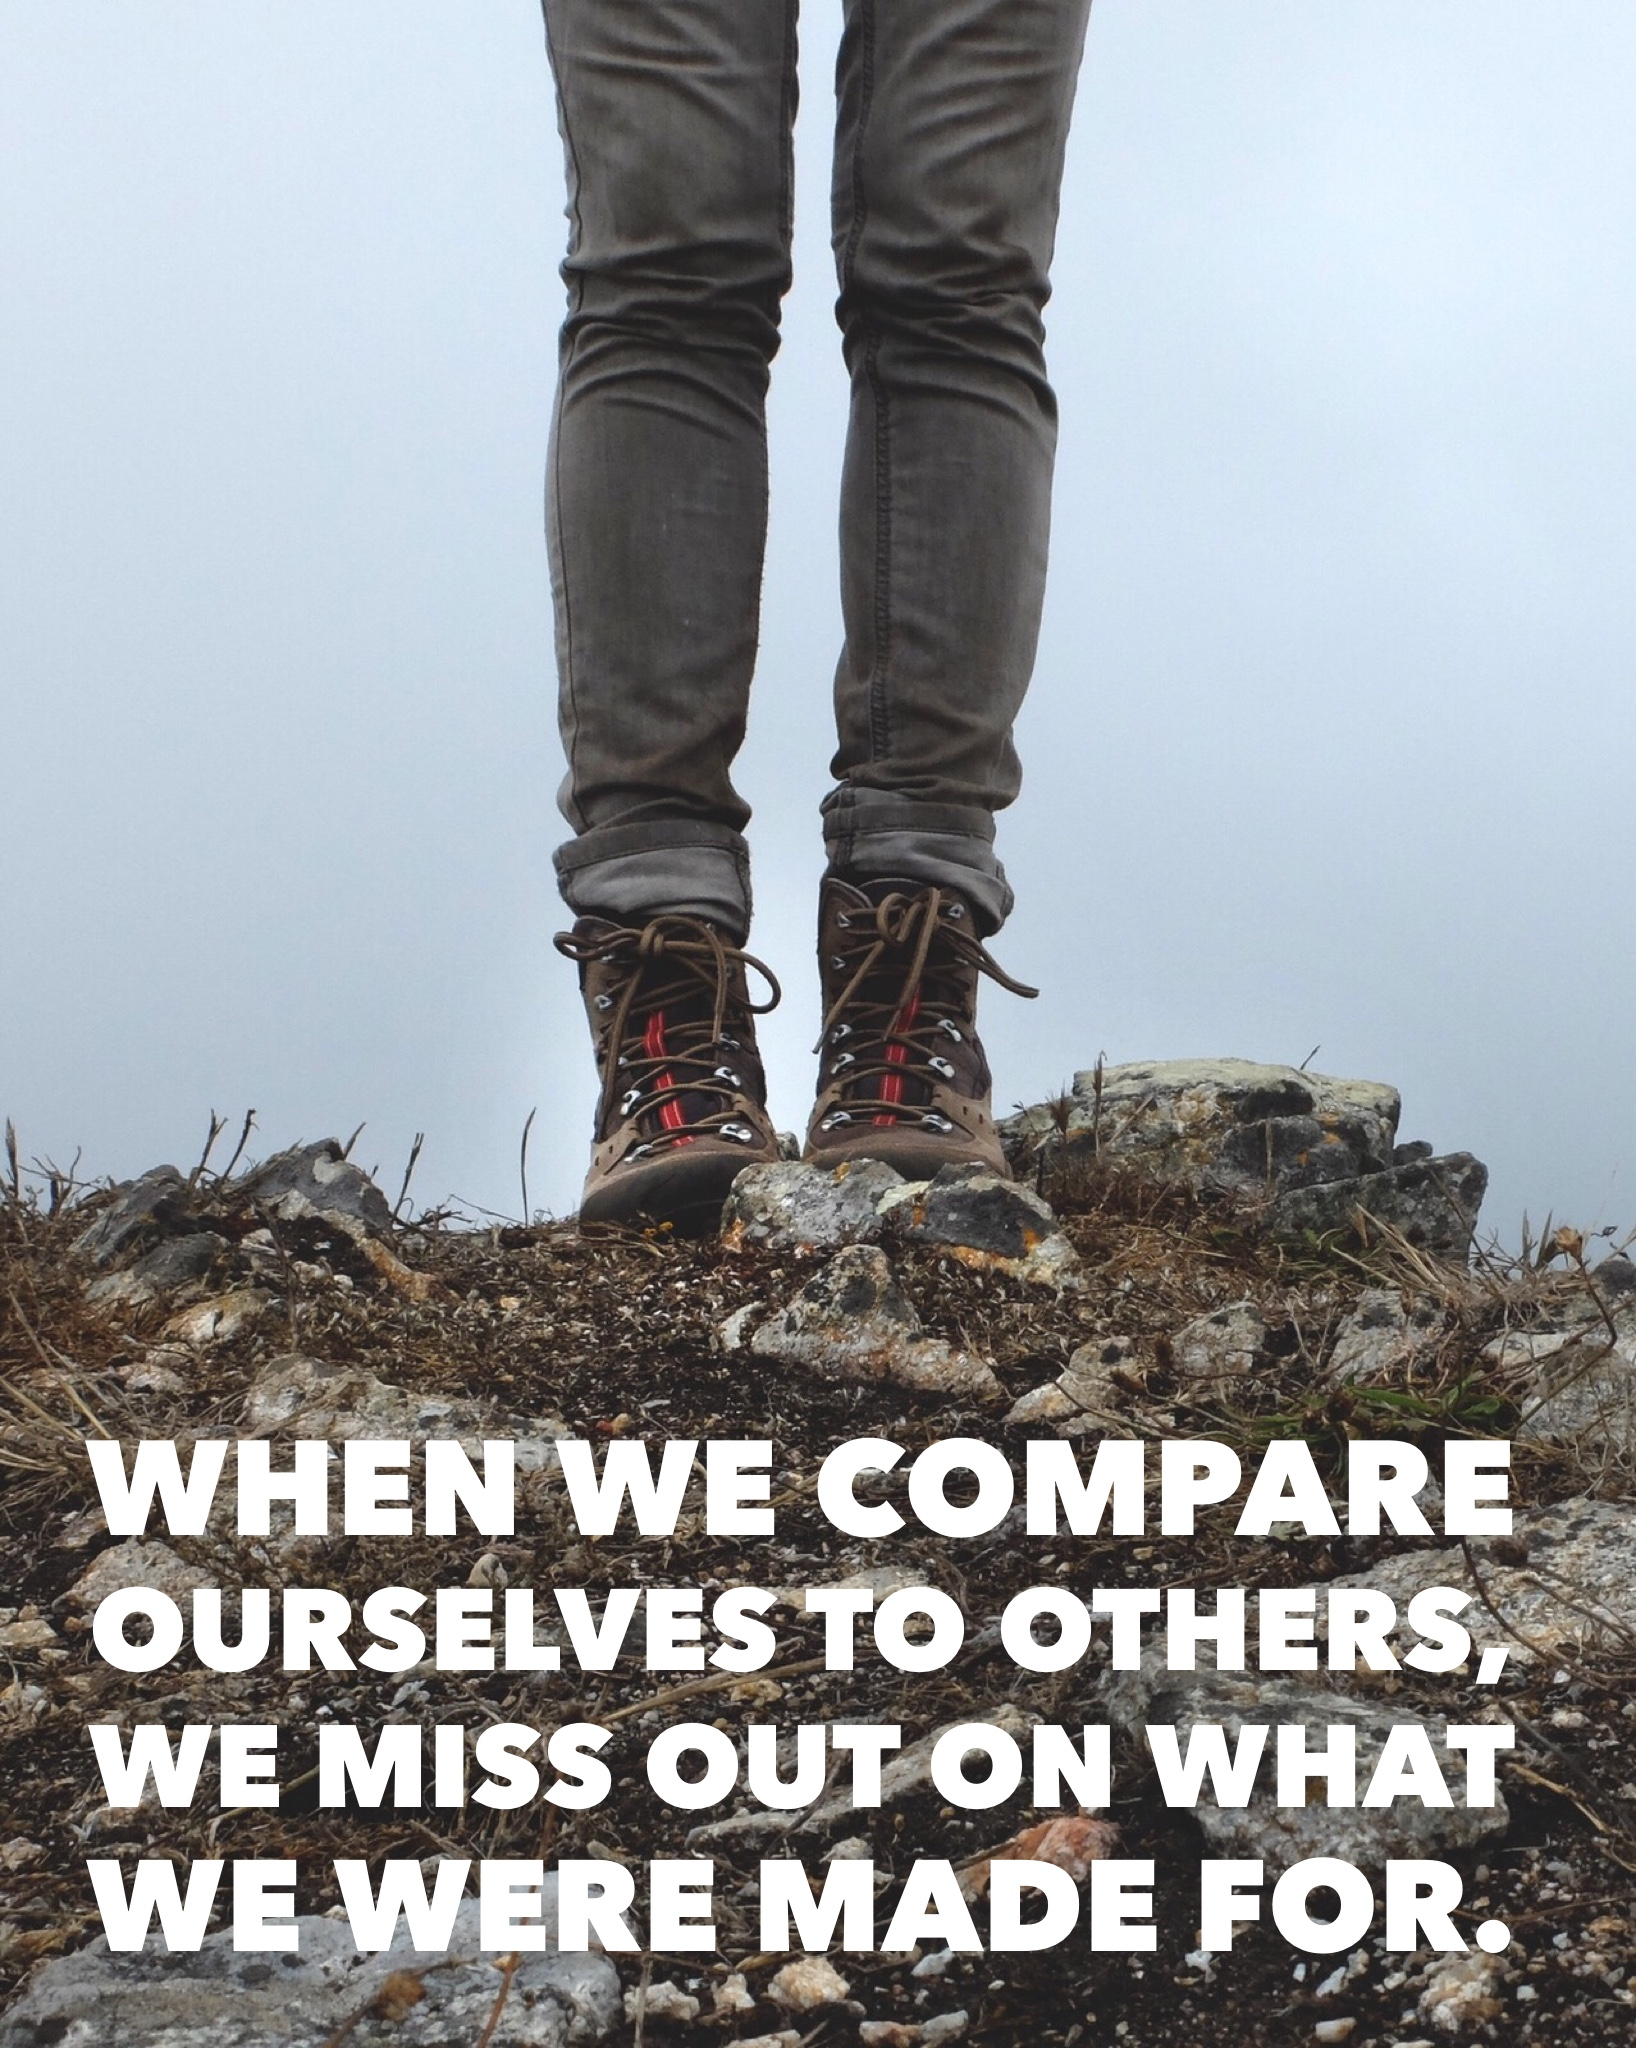 When we compare ourselves to others, we miss out on what we were made for. | InspiredRD.com